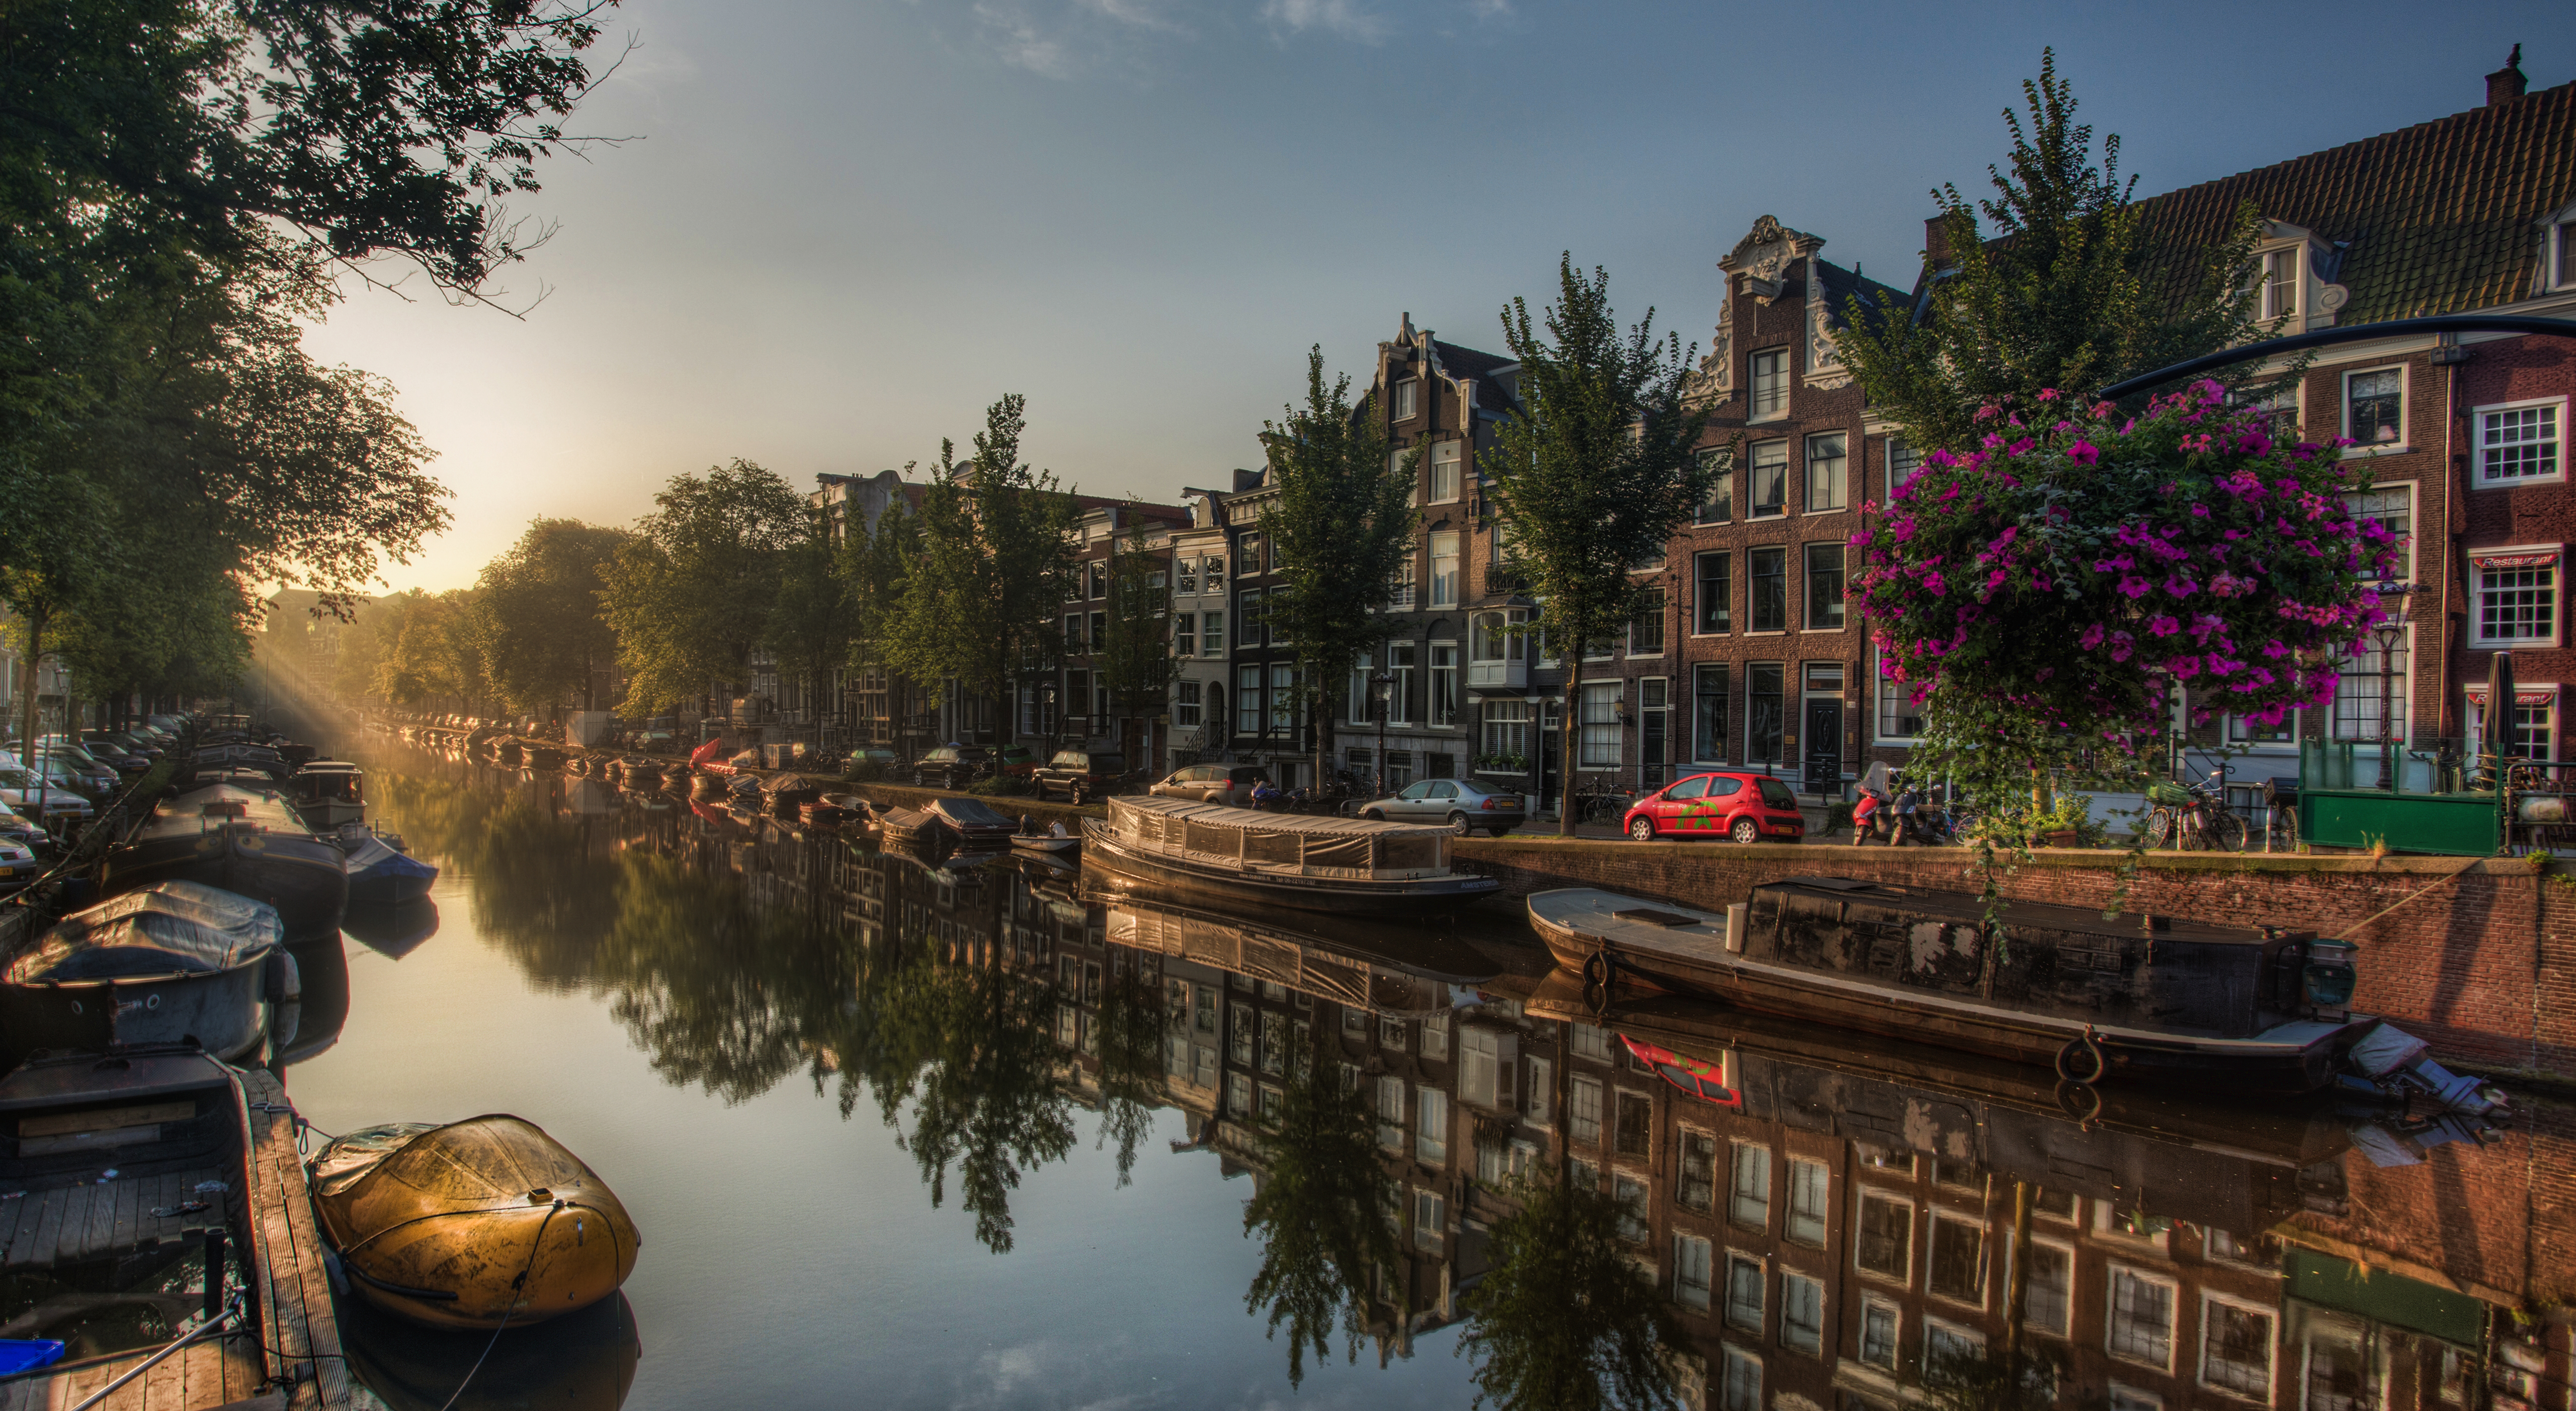 amsterdam 4k ultra hd wallpaper and background 5121x2806